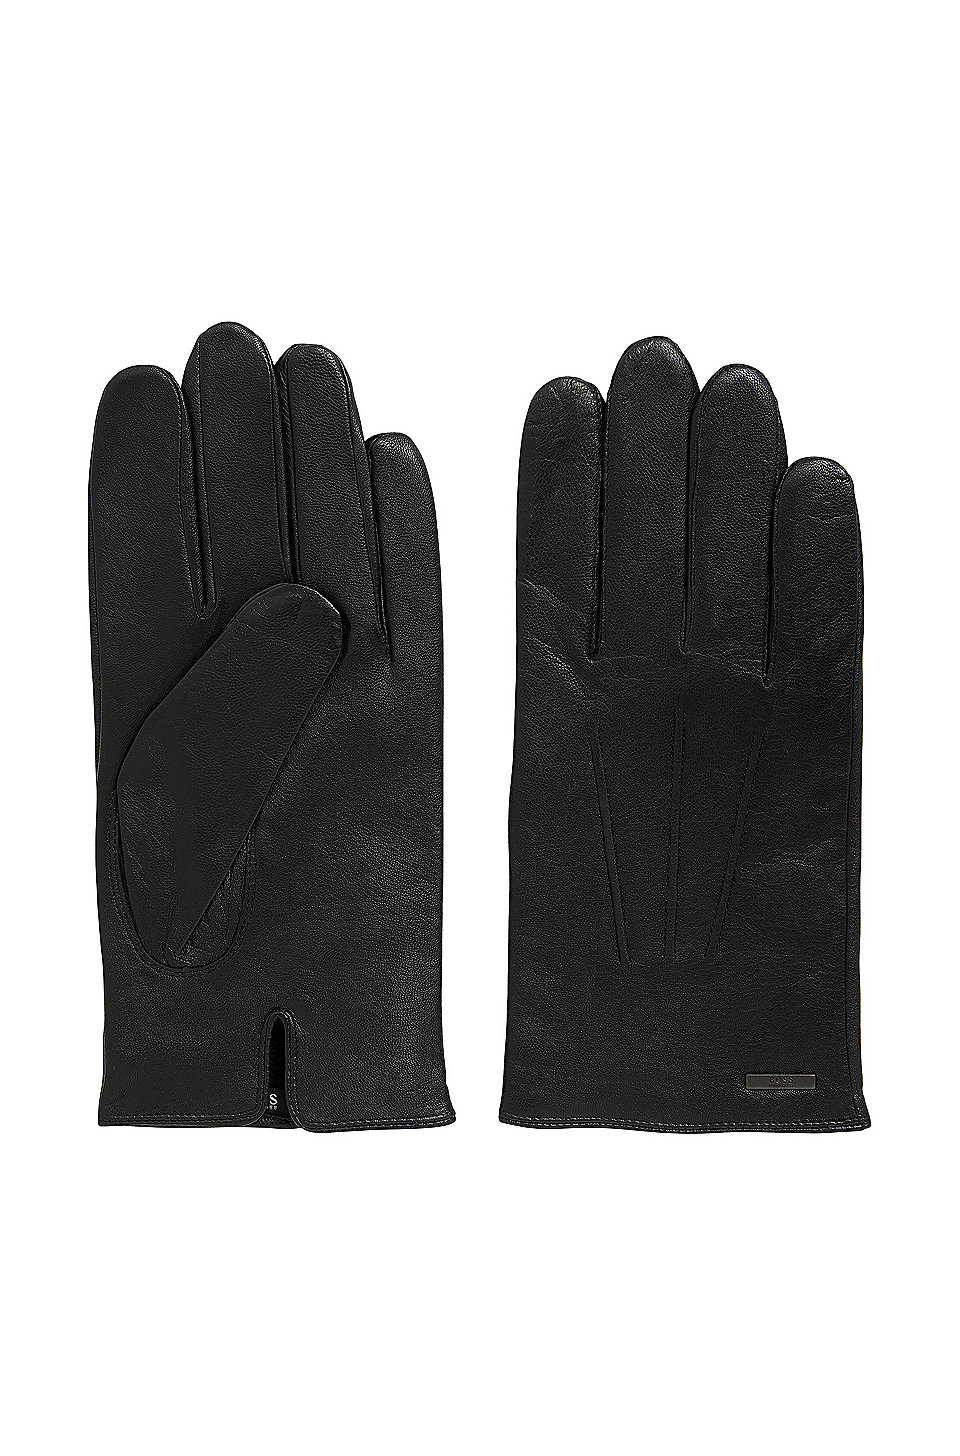 4fef97a844a370 BOSS - Nappa Leather Gloves | Hainz